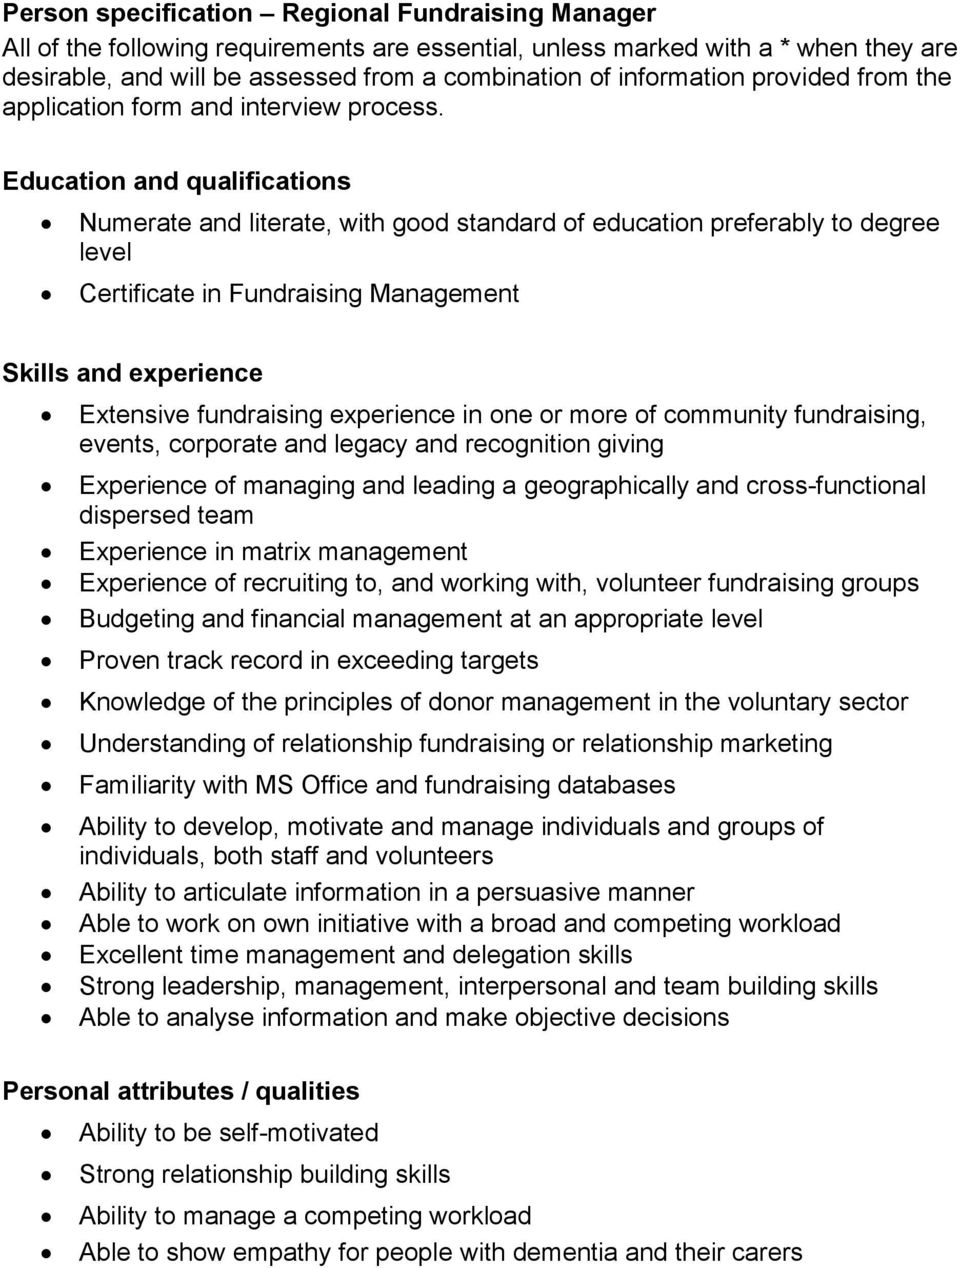 Education and qualifications Numerate and literate, with good standard of education preferably to degree level Certificate in Fundraising Management Skills and experience Extensive fundraising